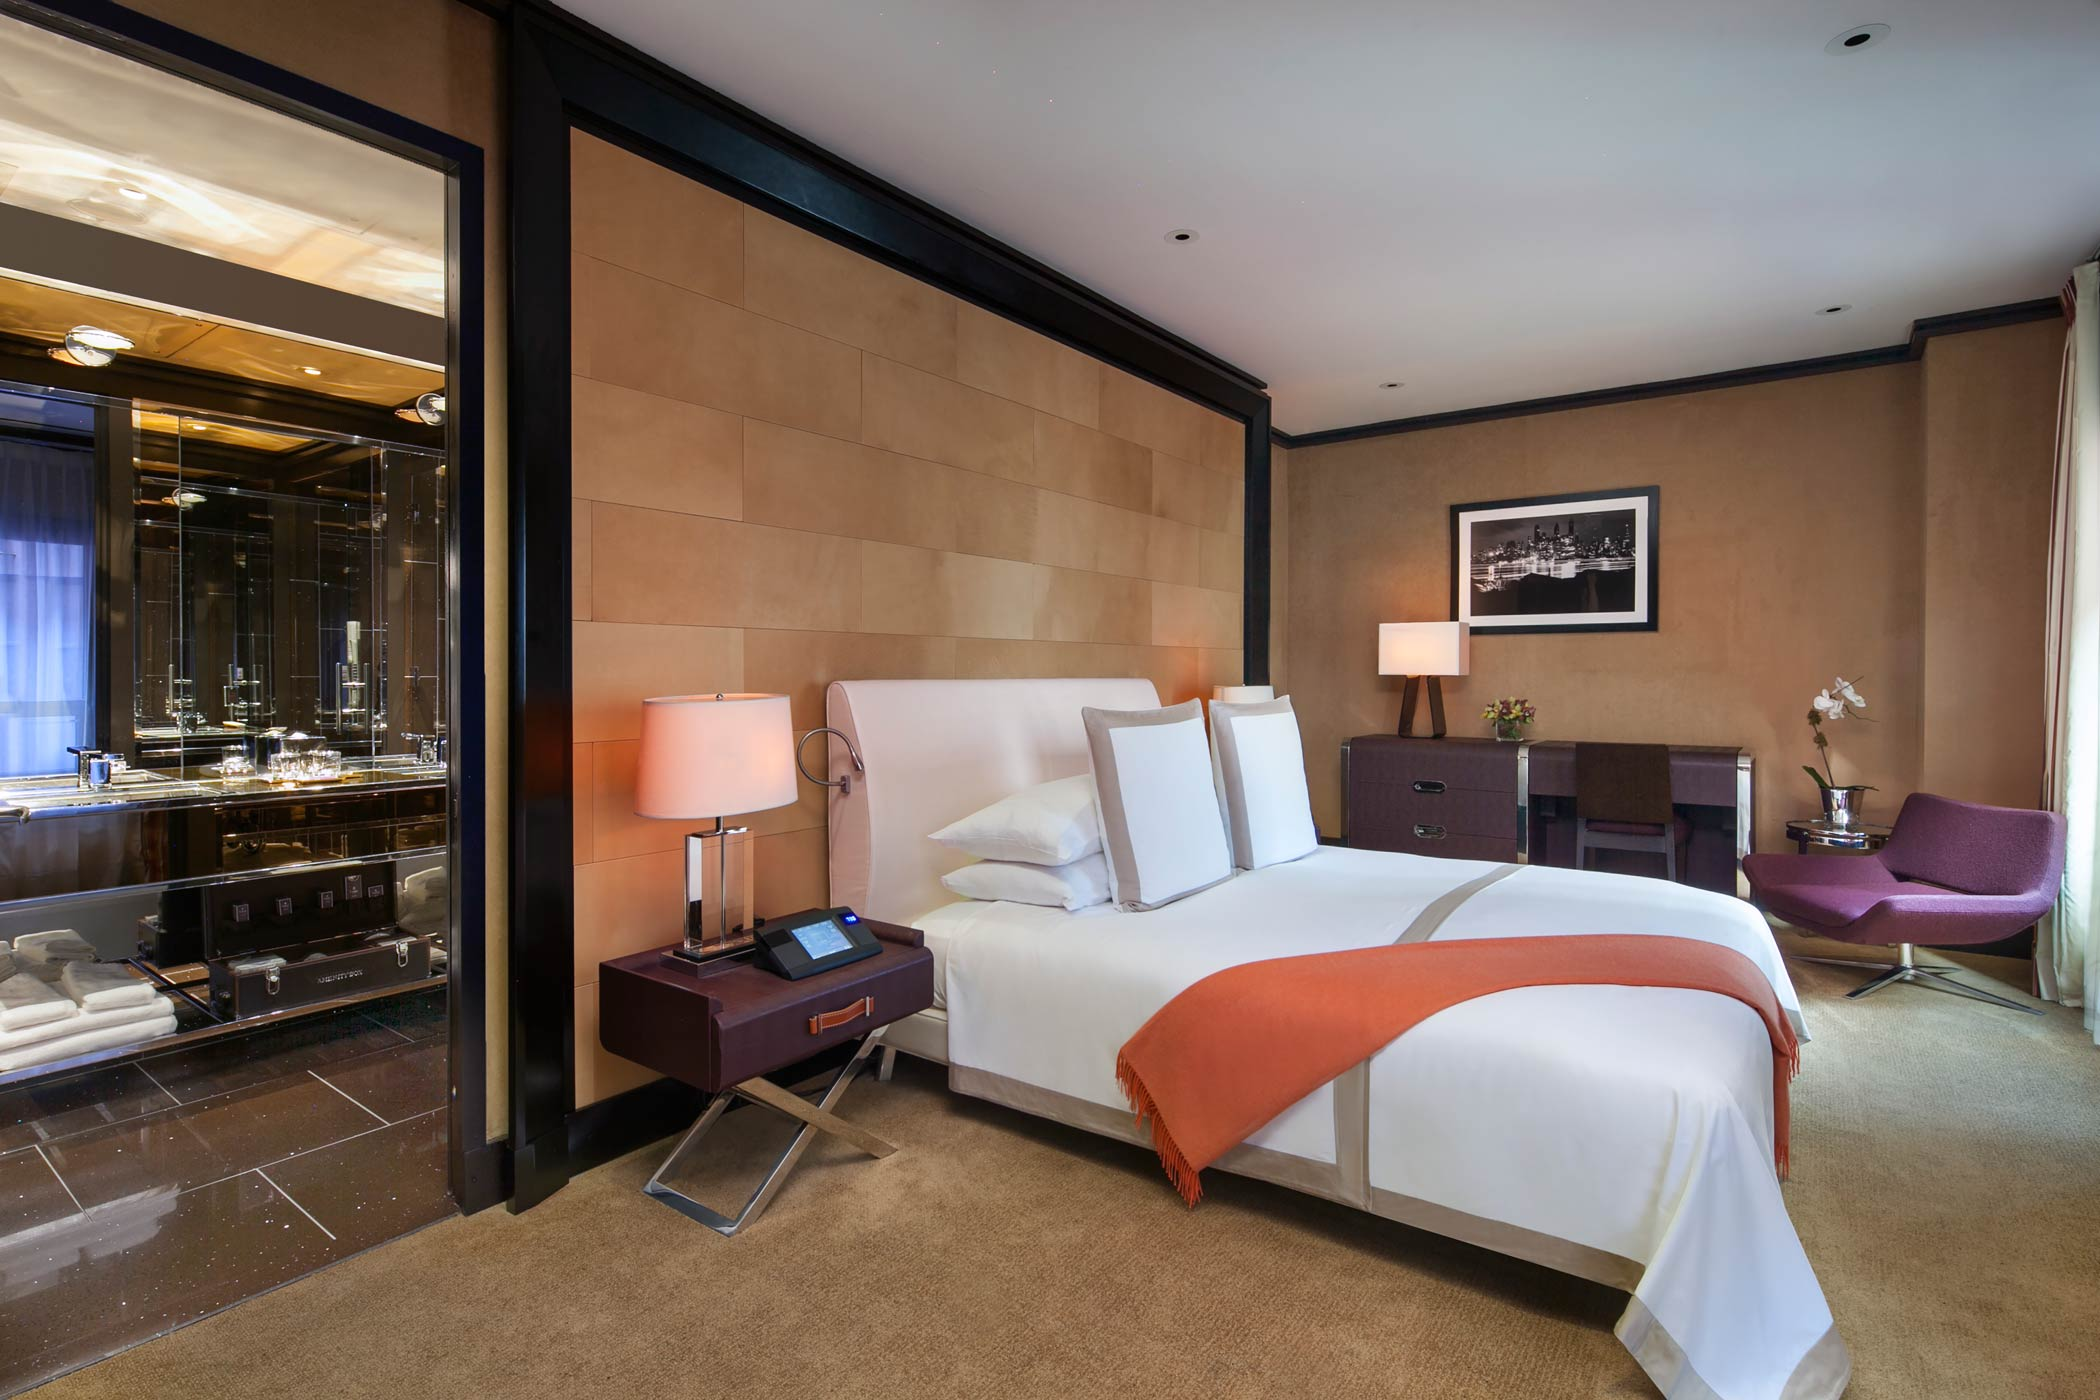 king size bedroom fancy suite bedroom with king size bed dressed in white sheets and an orange throw director suite luxury hotel new york the chatwal